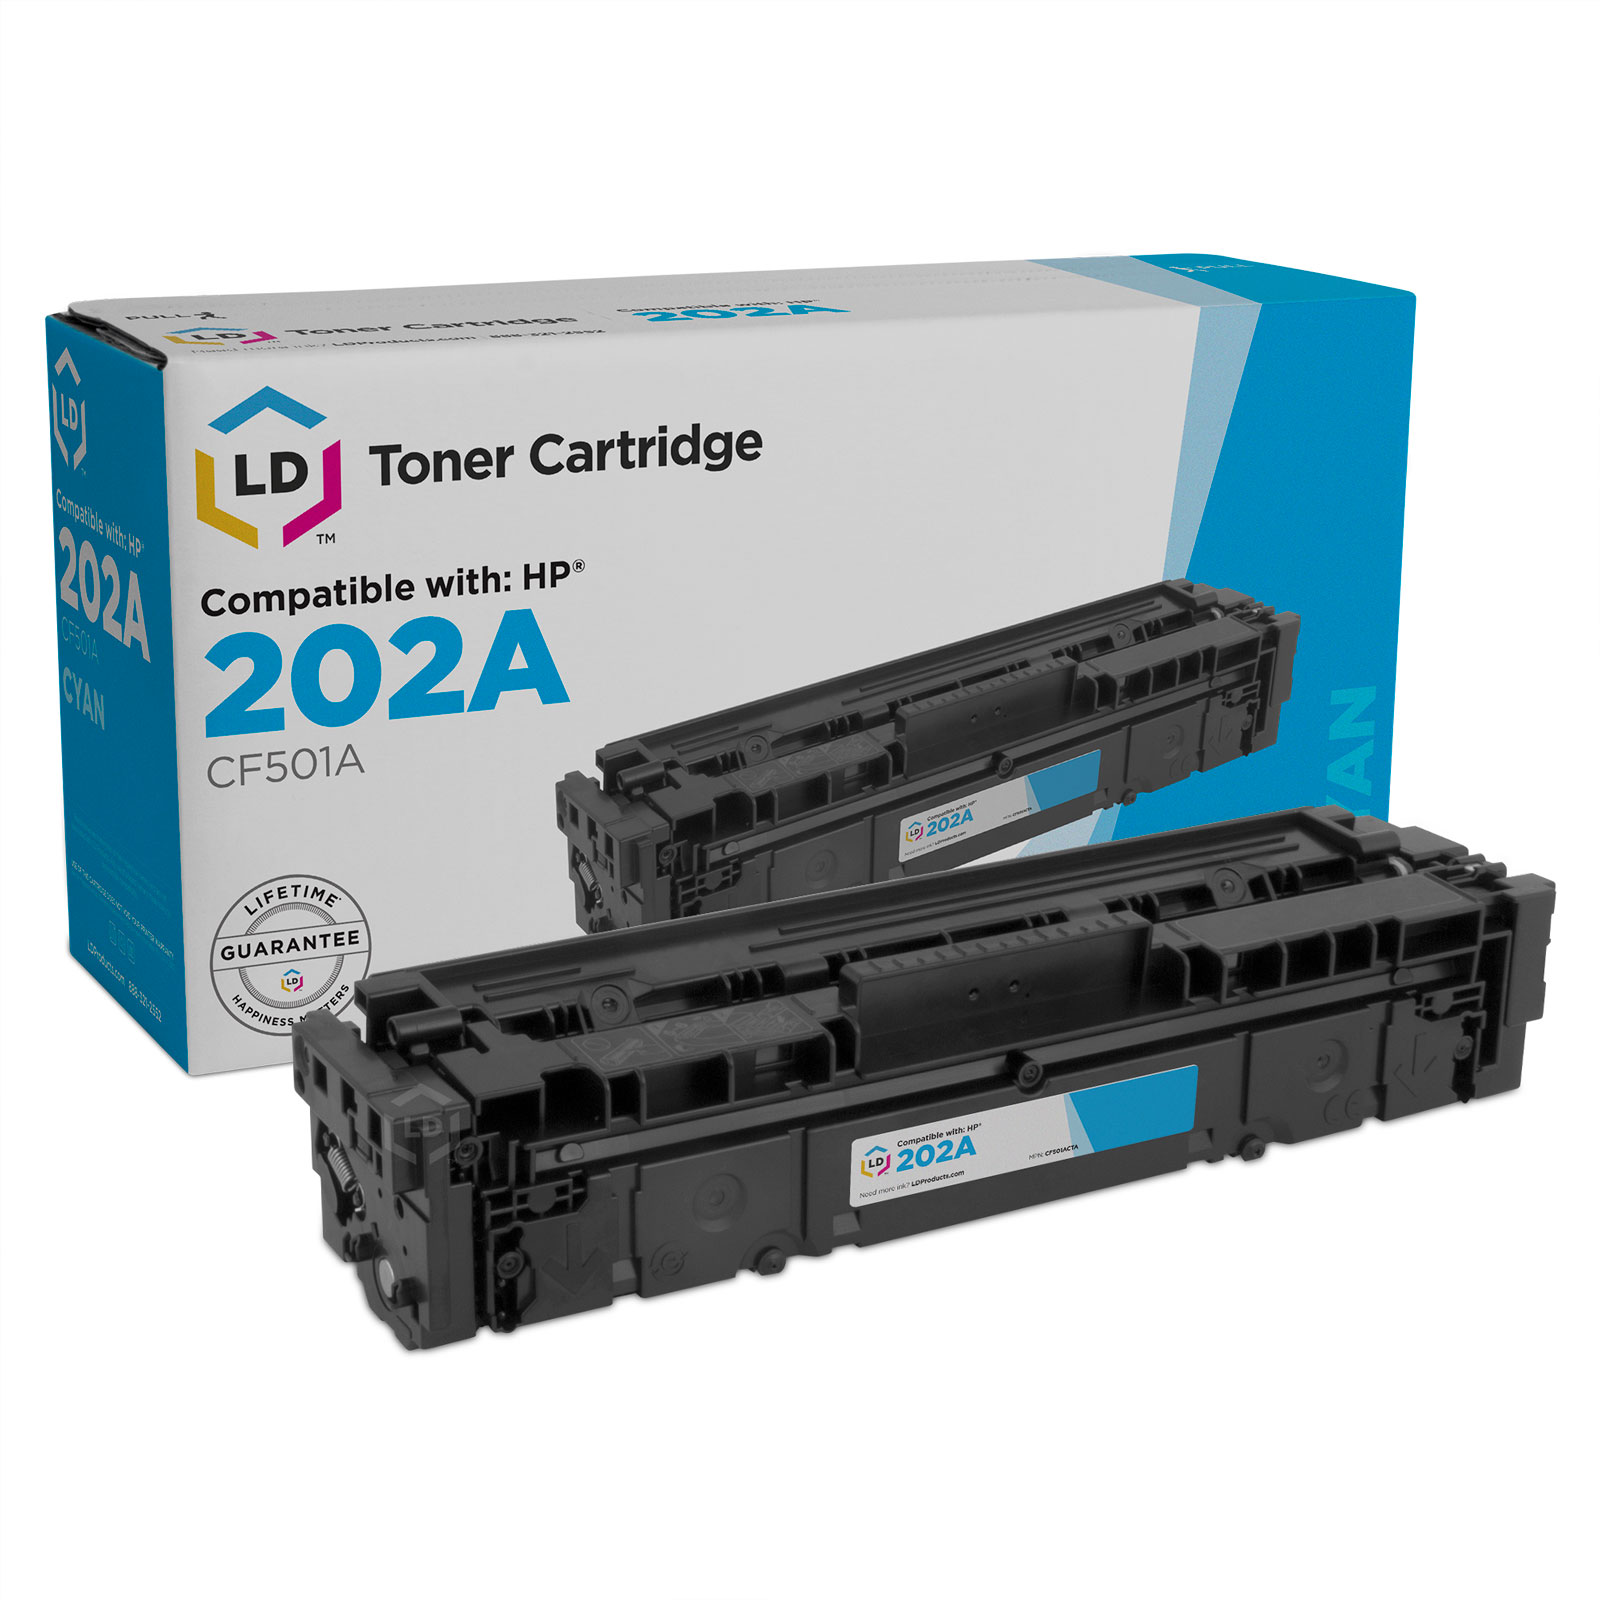 LD Compatible Replacement for HP 202A / CF501A Cyan Toner Cartridge for use in Color LaserJet M254dw & M281dw